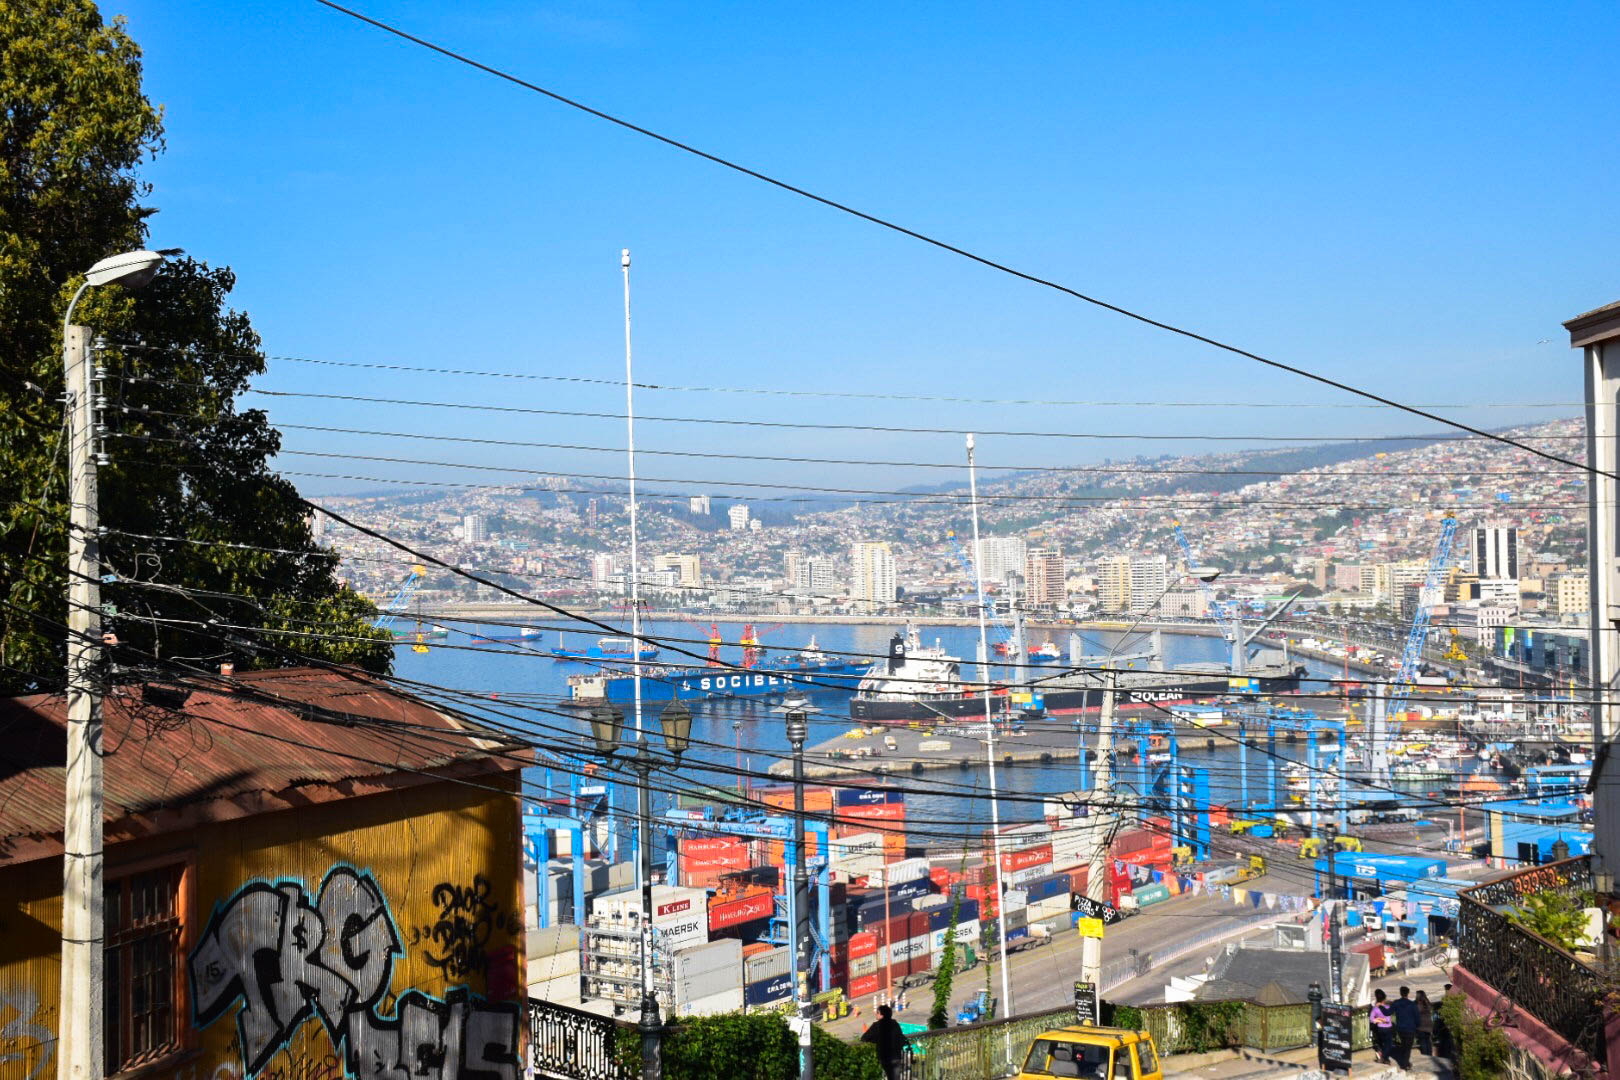 Arte Urbano Valparaiso Valparaíso The City Of Many Colors Isa Study Abroad Student Blog